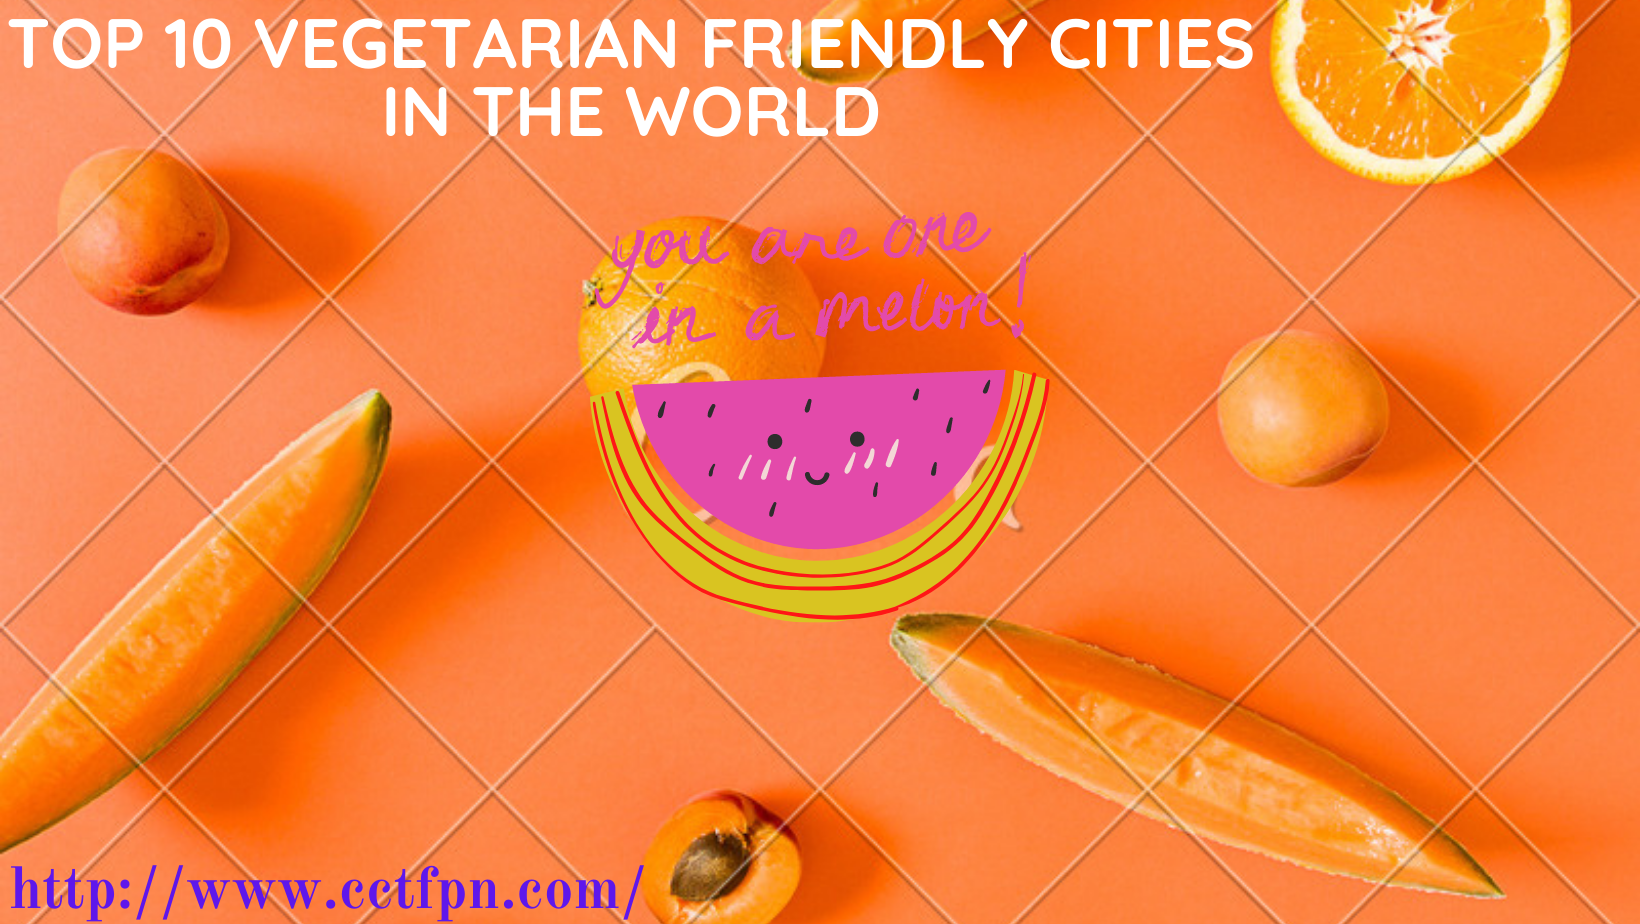 Top 10 Vegetarian Friendly Cities In The World - Reveled